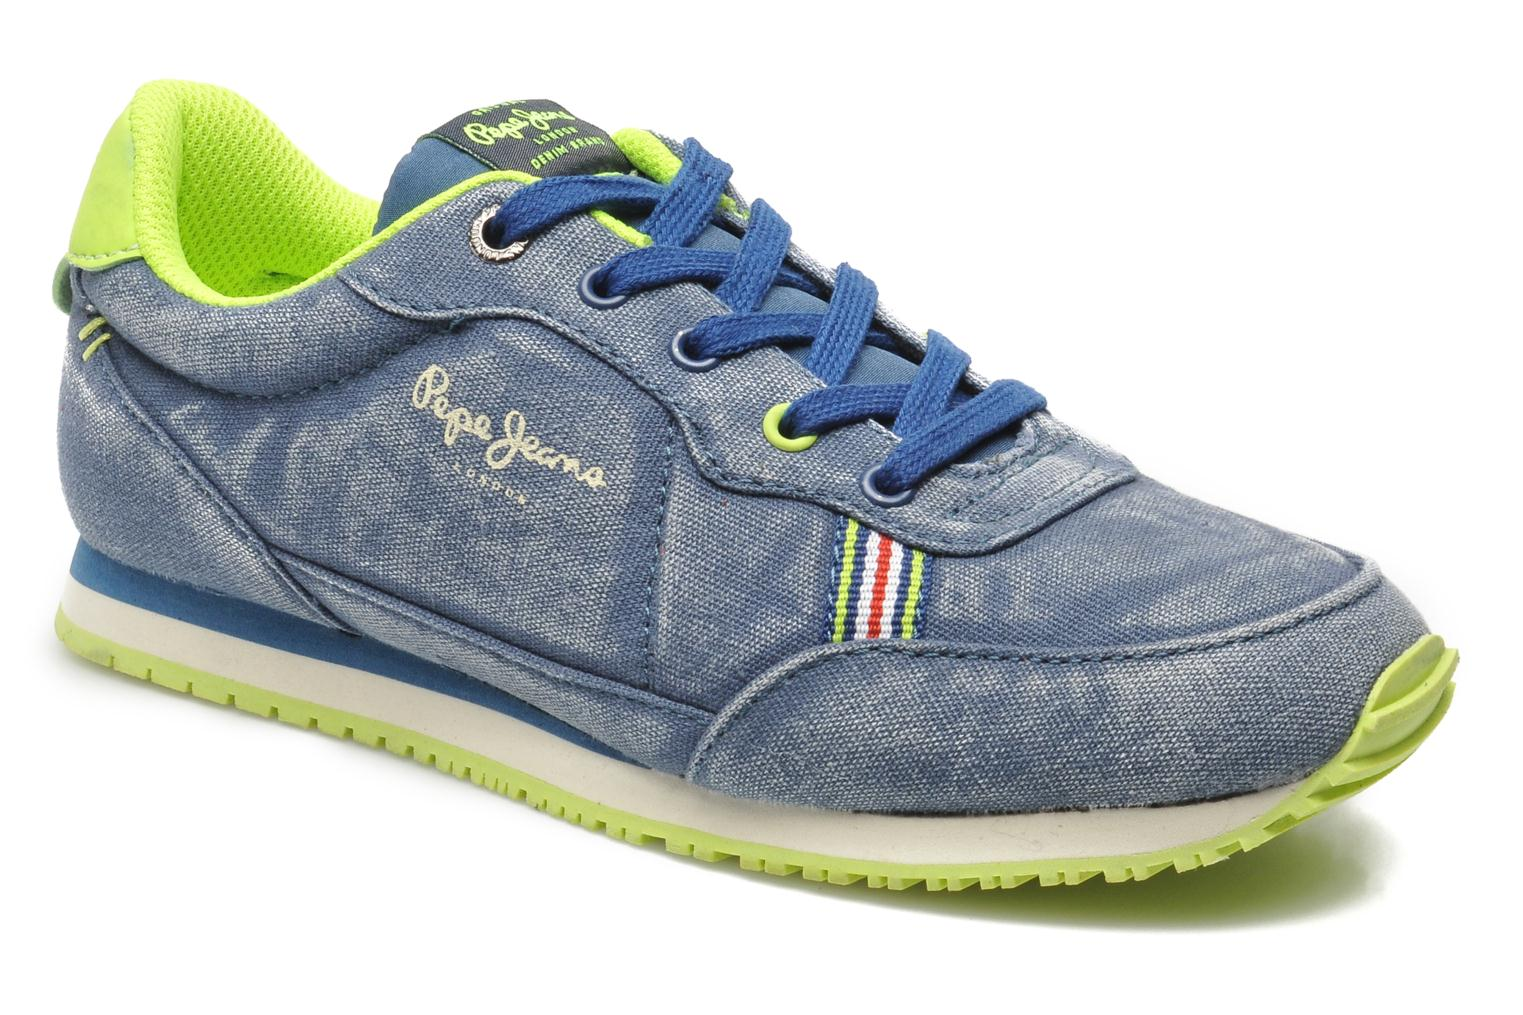 Sneakers Sydney by Pepe jeans